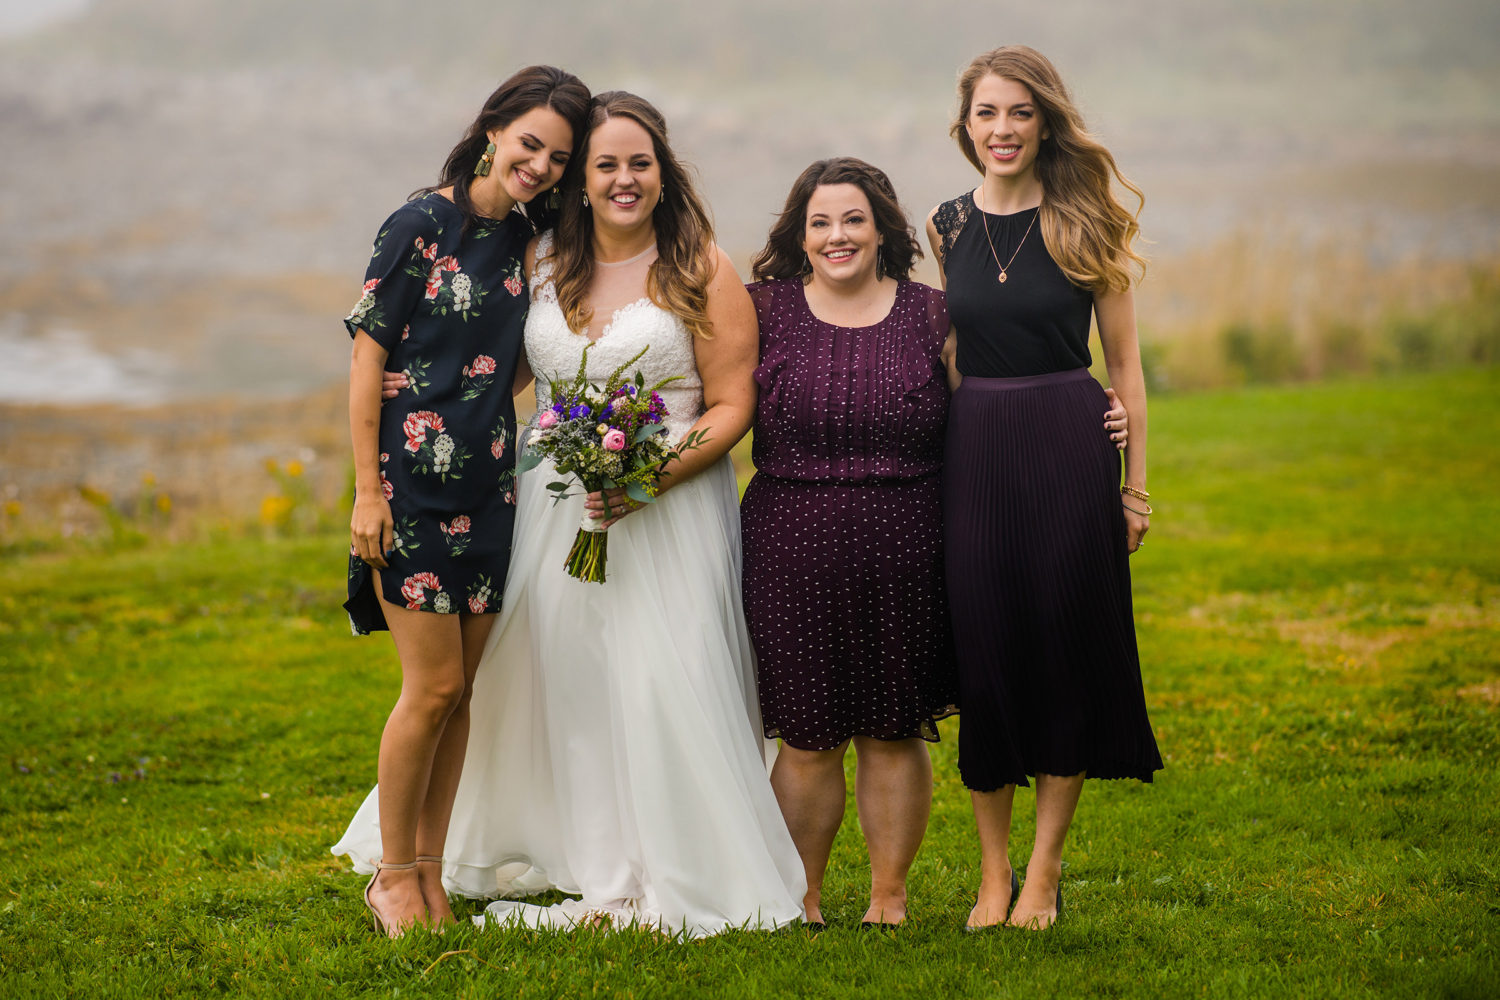 Halifax_weding_photographers_jenn_nauss_cooked_photography_nova_scotia_cooked_portraits_family_commercial_best_in_Canada-2